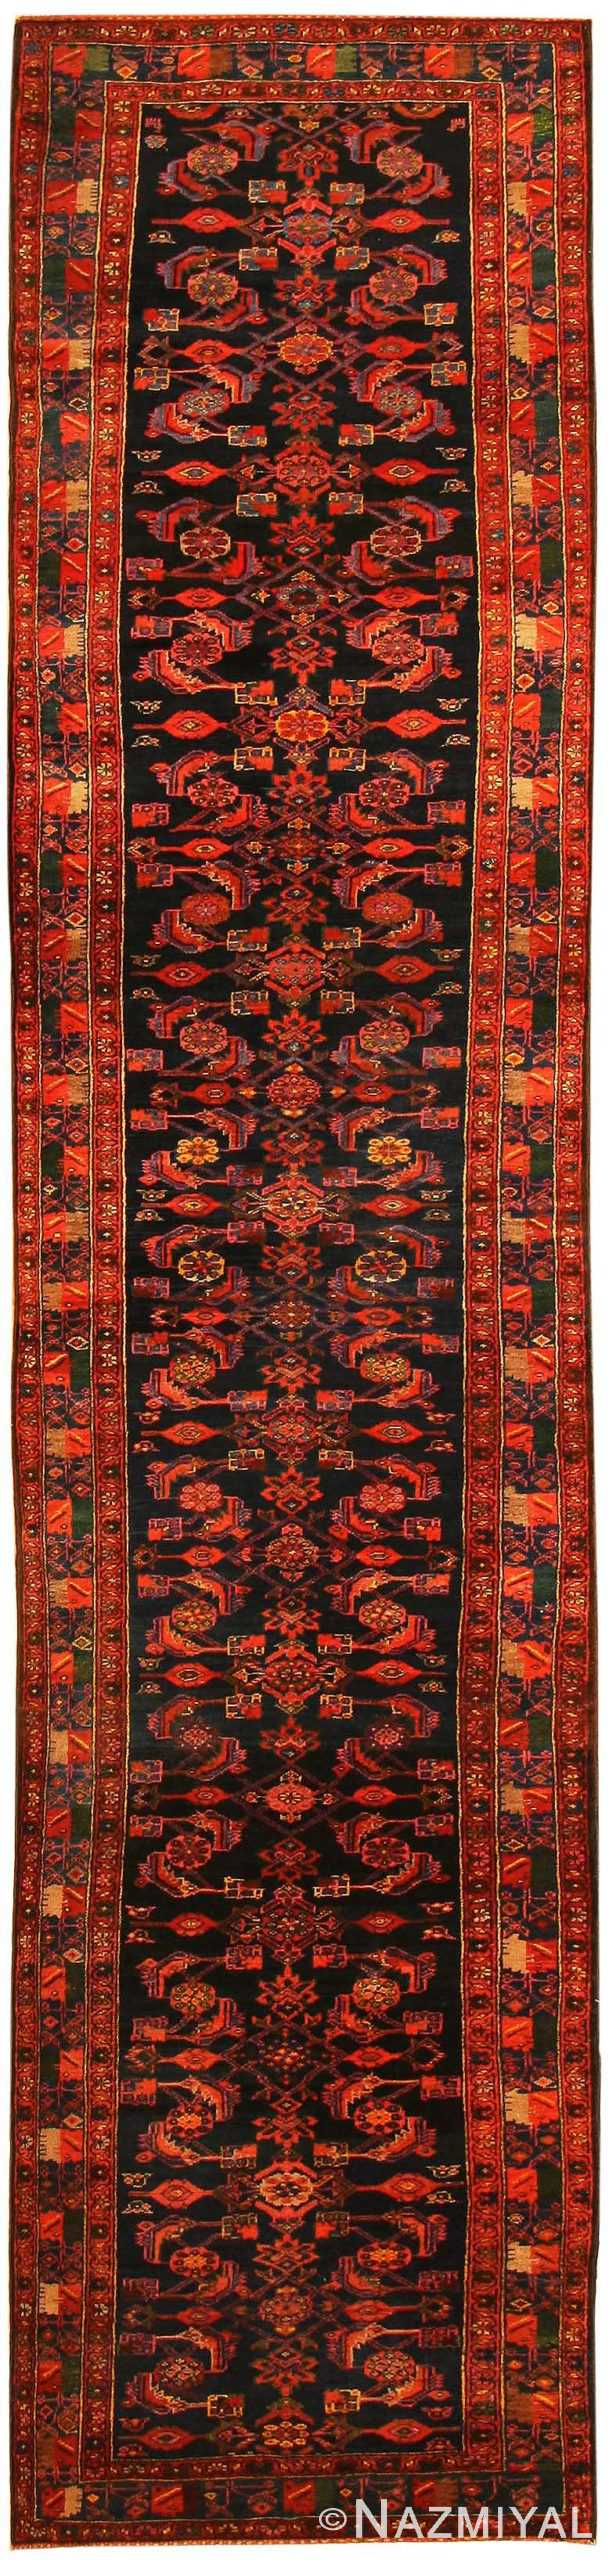 Antique Hamedan Persian Rug 43844 Nazmiyal Collection